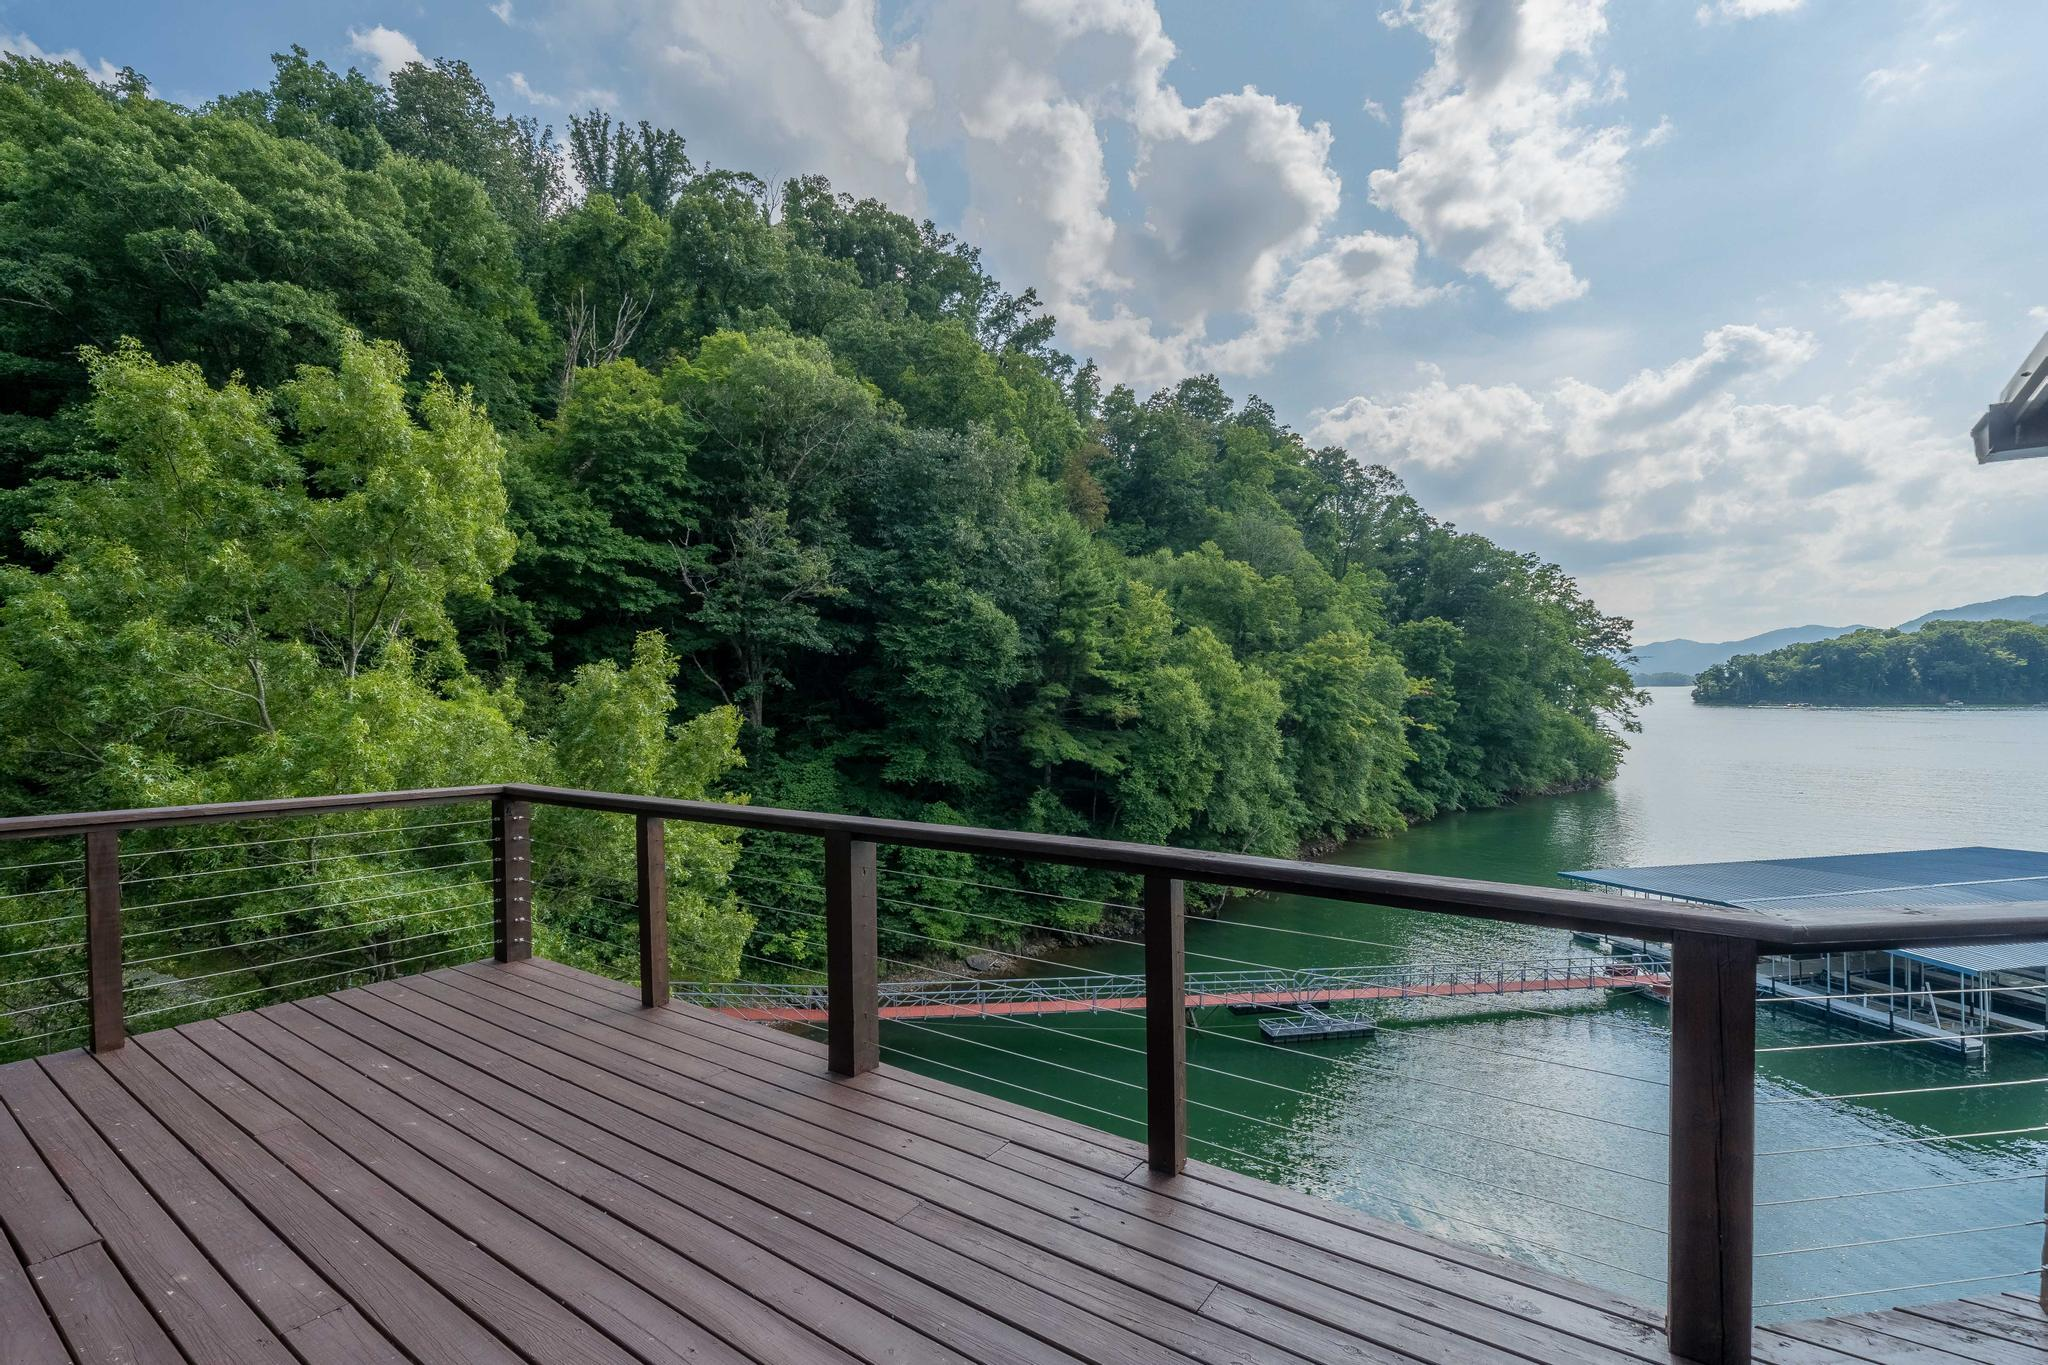 709 cove edge dr (37 of 72)